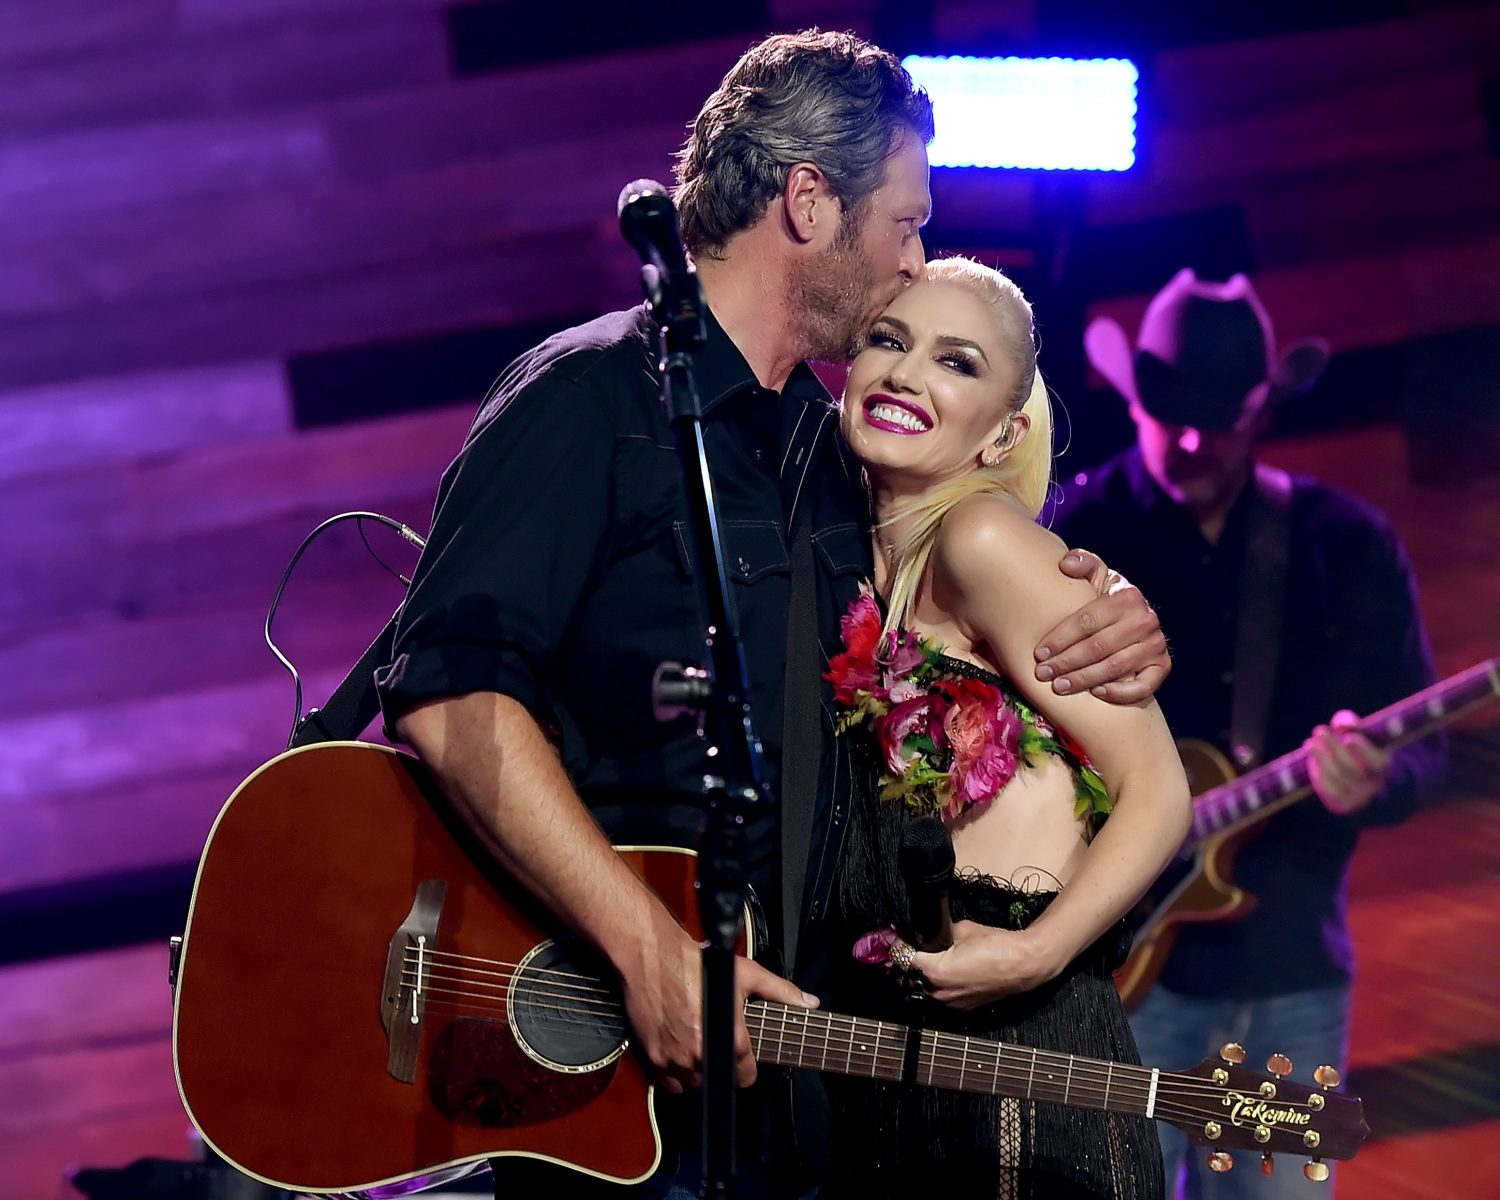 BURBANK, CA - MAY 09:  Singers Blake Shelton (L) and Gwen Stefani perform on the Honda Stage at the iHeartRadio Theater on May 9, 2016 in Burbank, California.  (Photo by Kevin Winter/Getty Images for iHeartMedia)